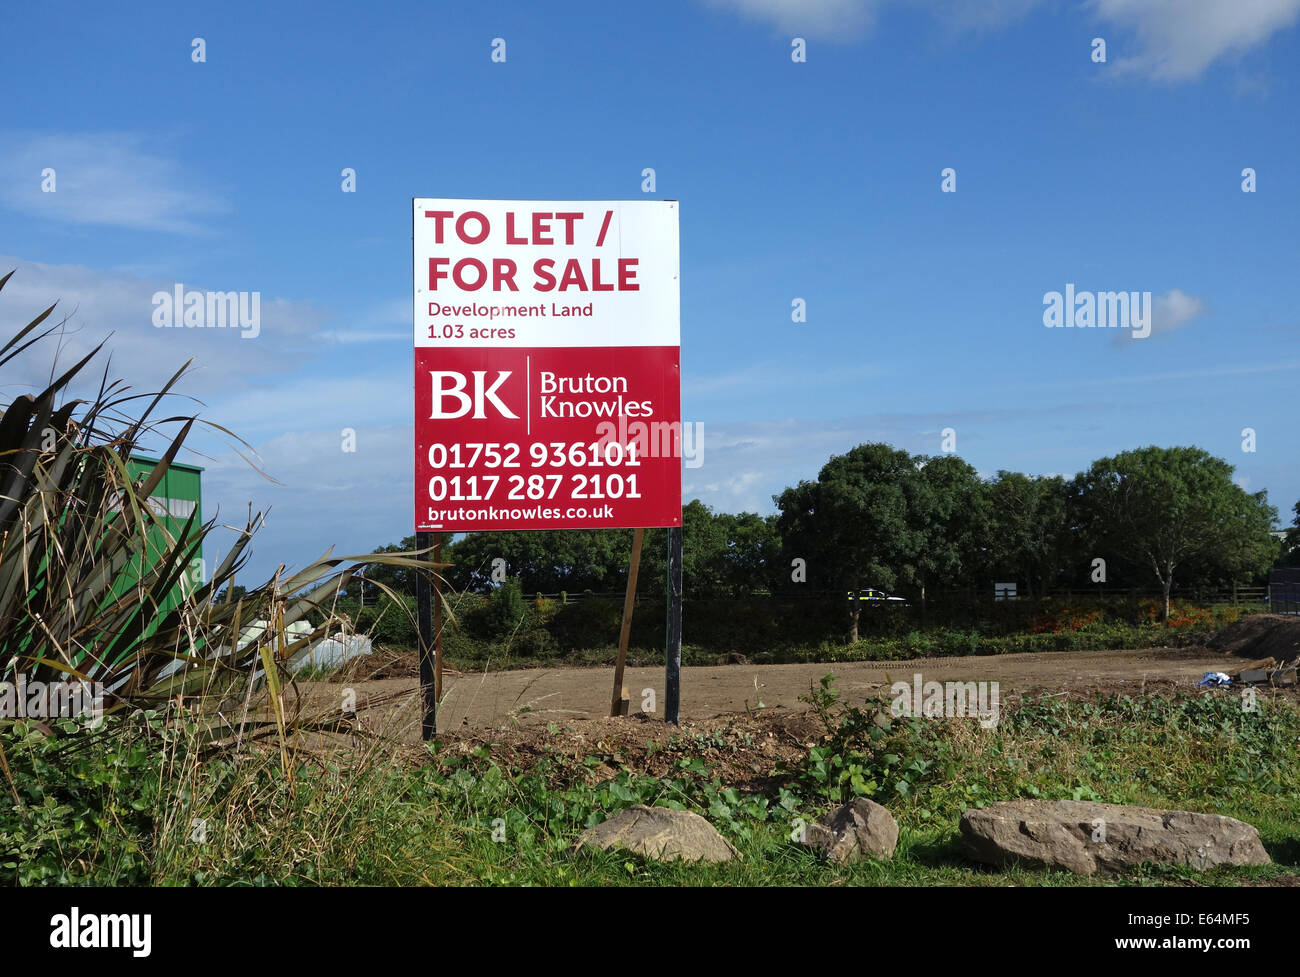 Development land for sale sign